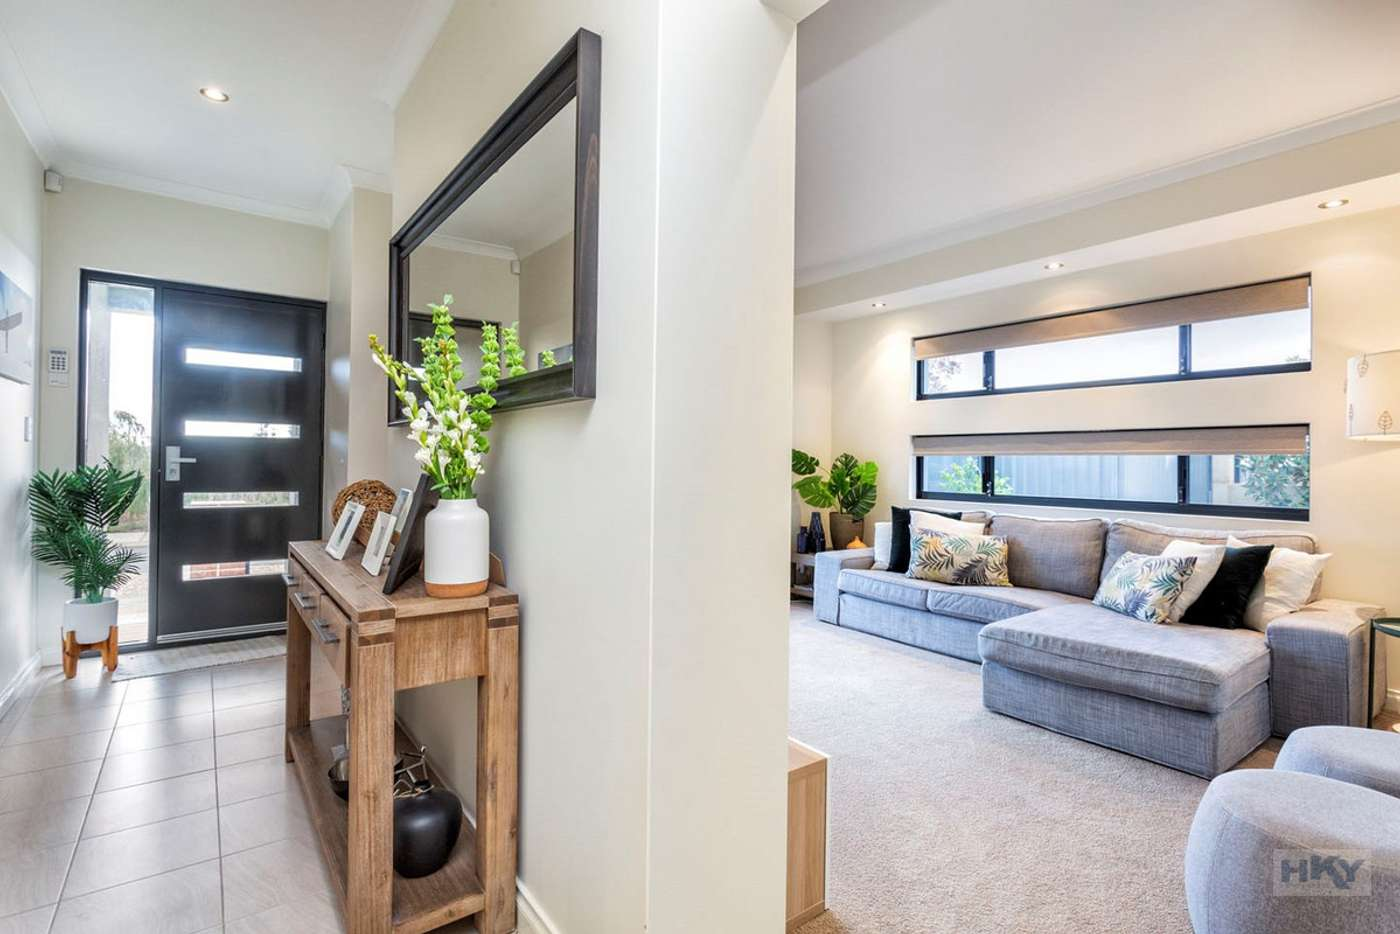 Fifth view of Homely house listing, 30 Flindell Avenue, Caversham WA 6055